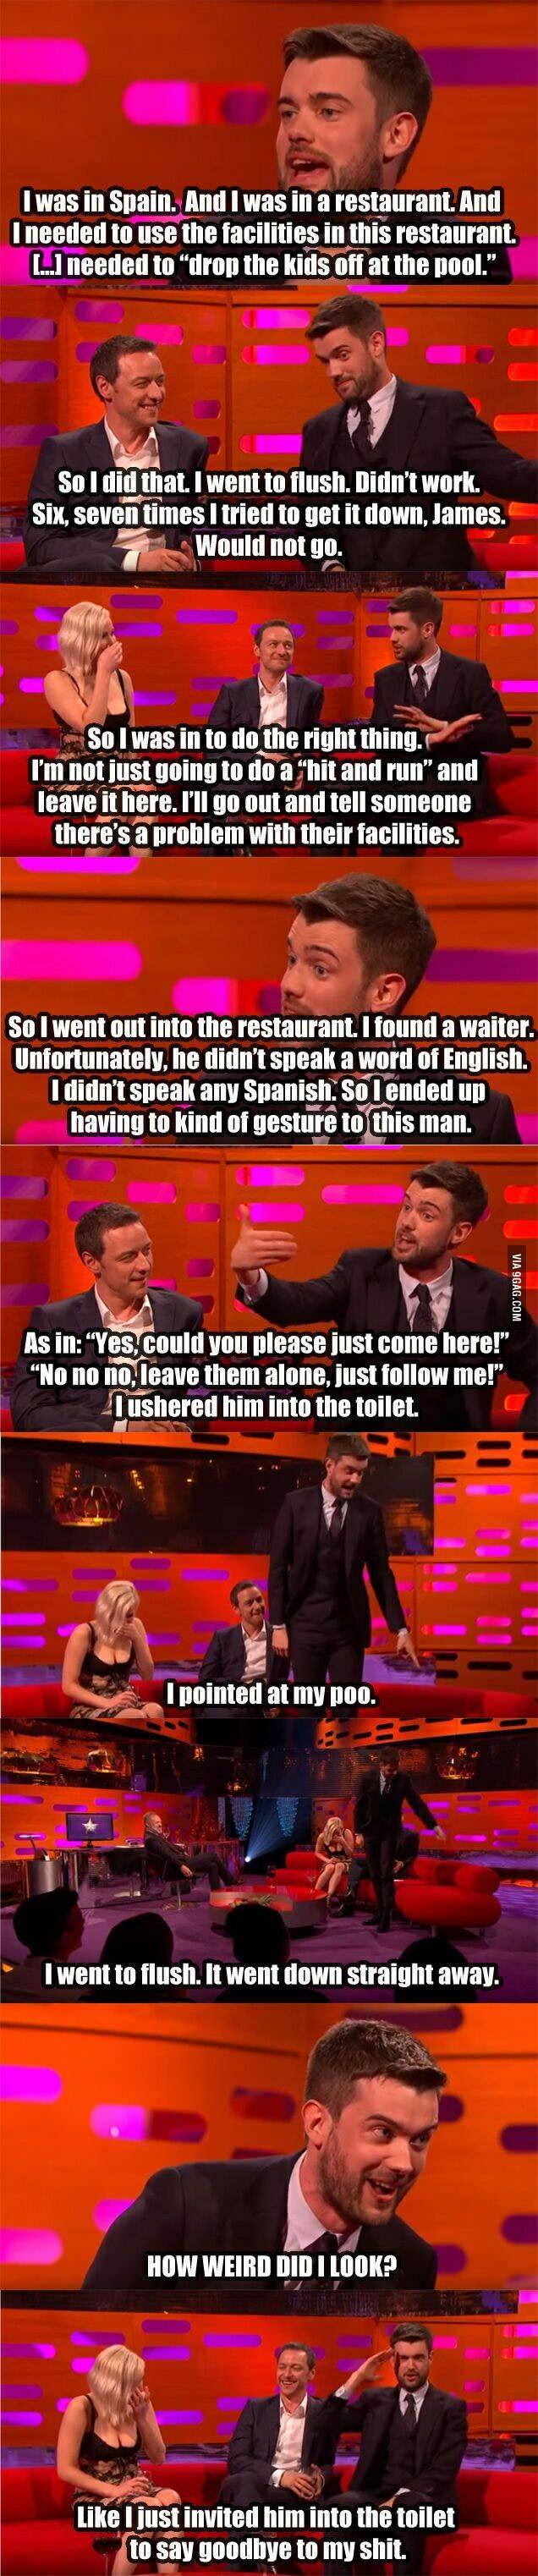 The best language barrier story! - 9GAG